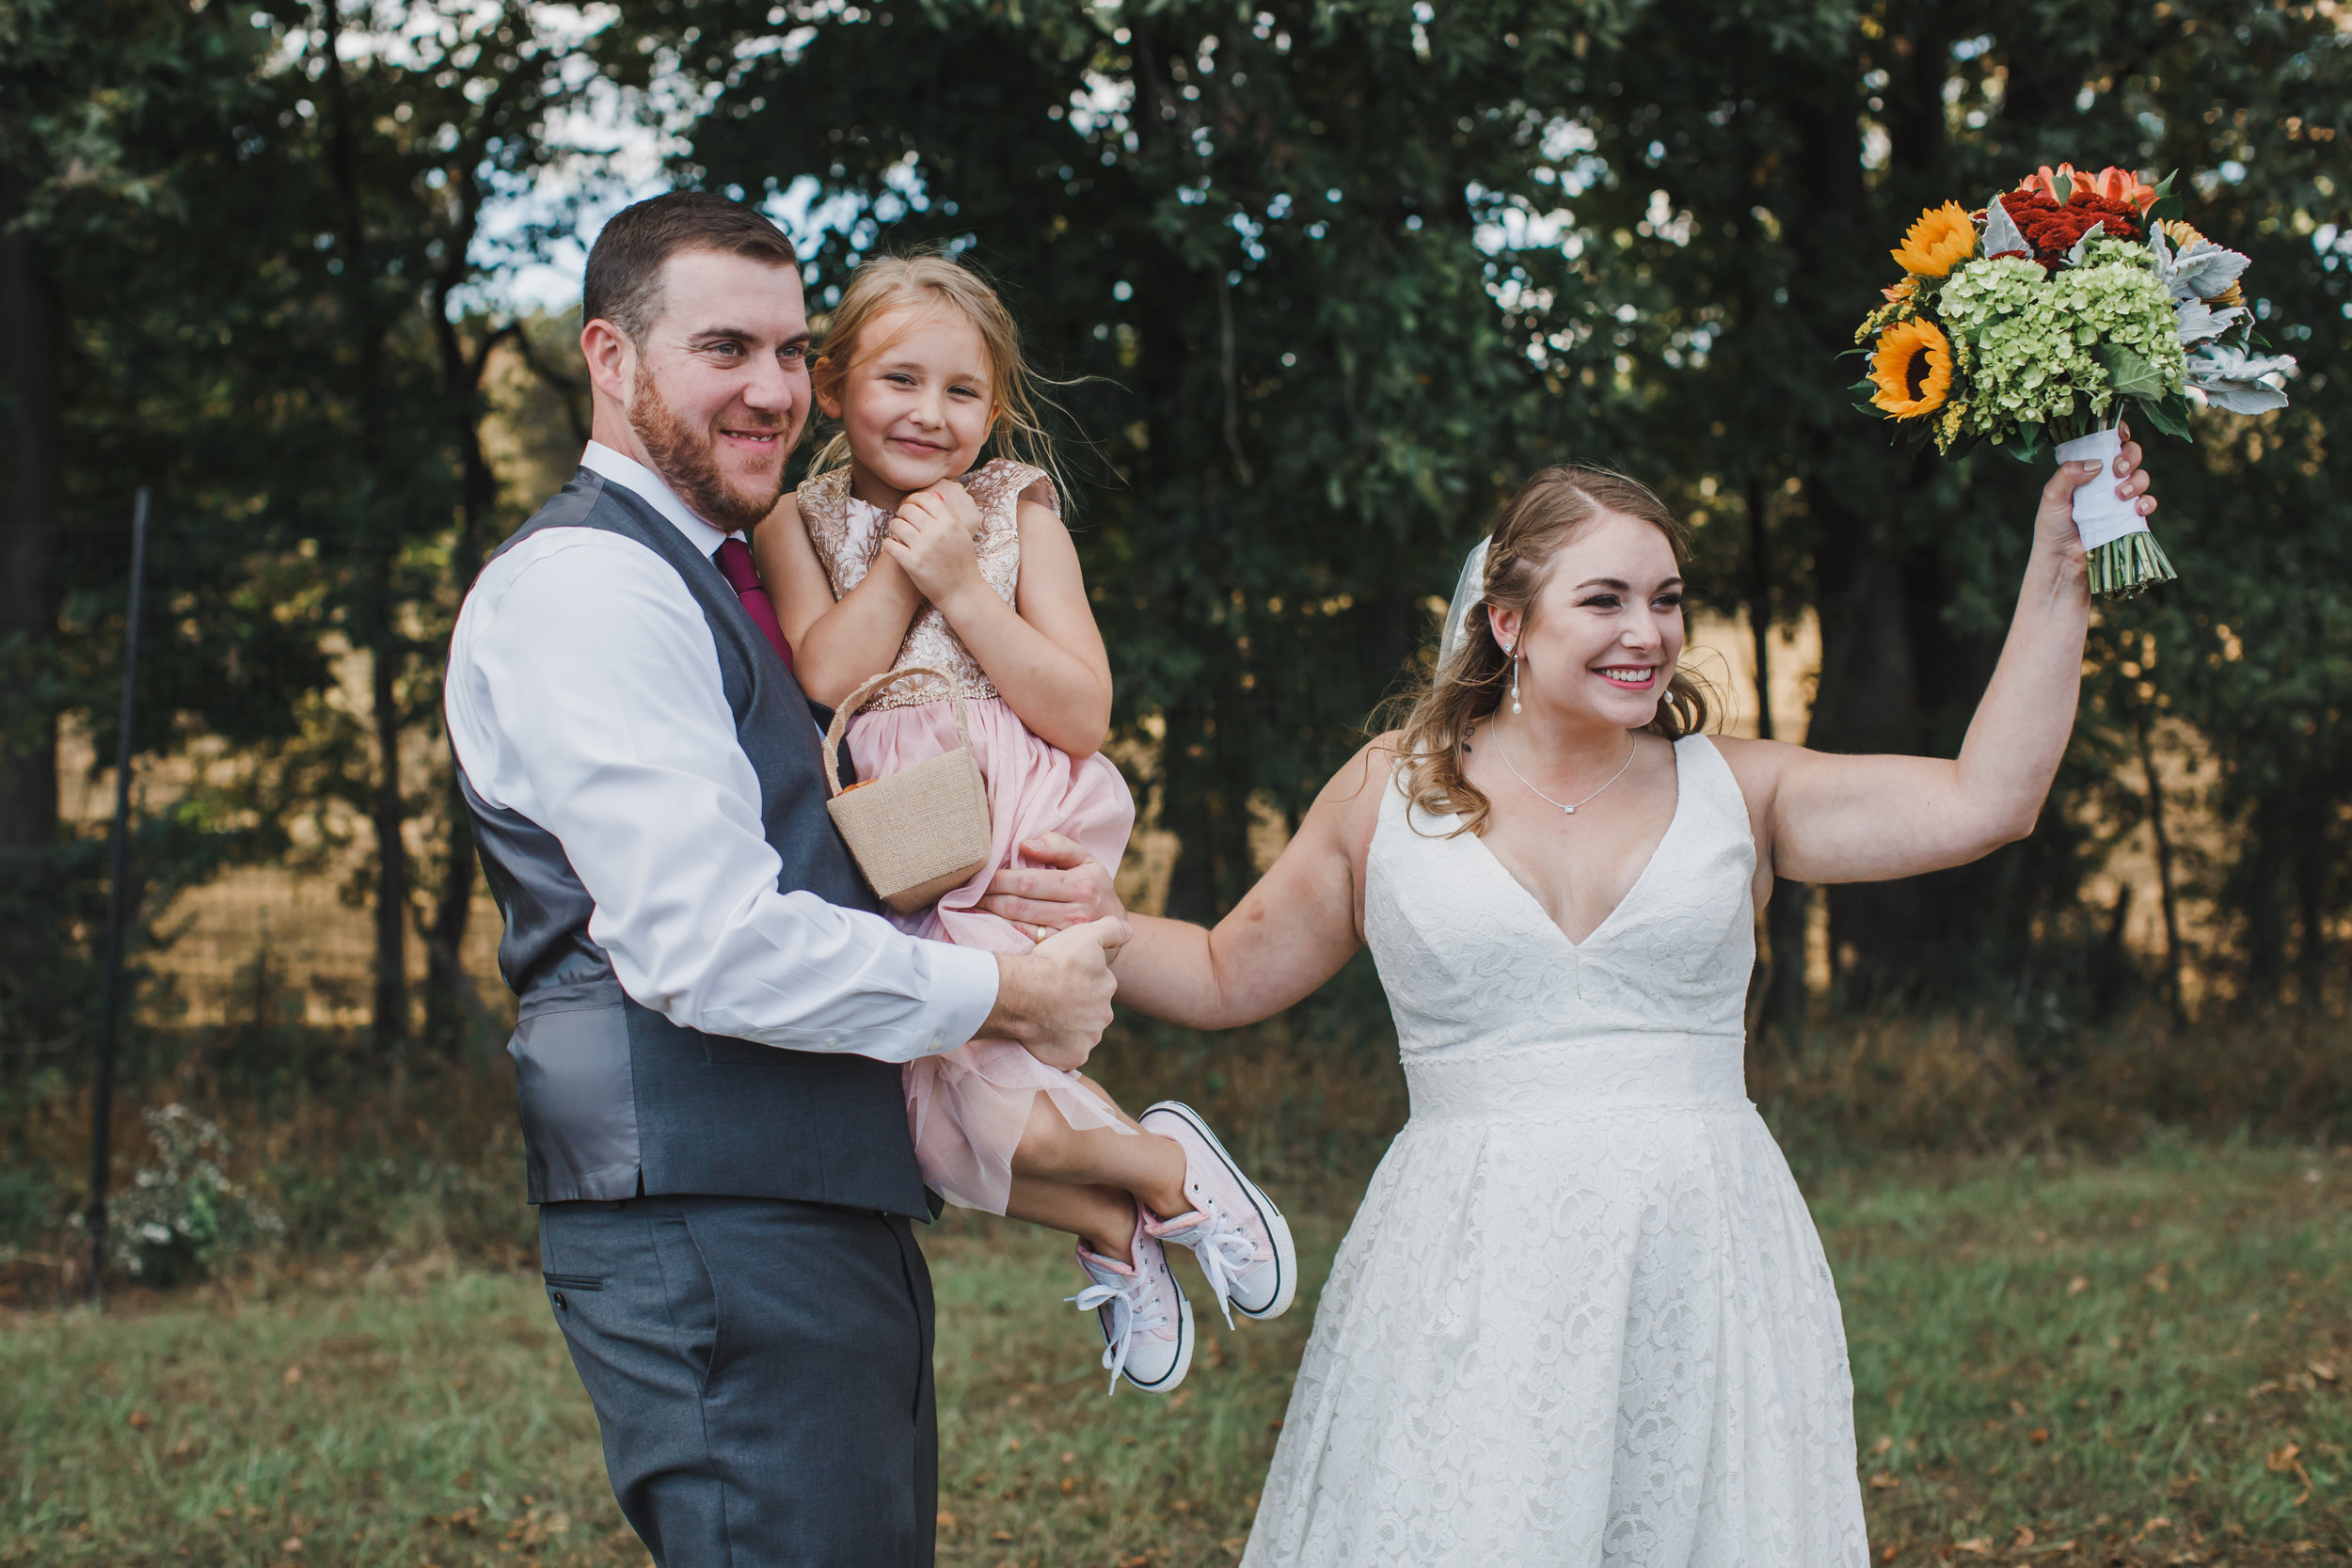 Fling - Virginia Wedding Photographer - Photography by Amy Nicole-254-10.jpg